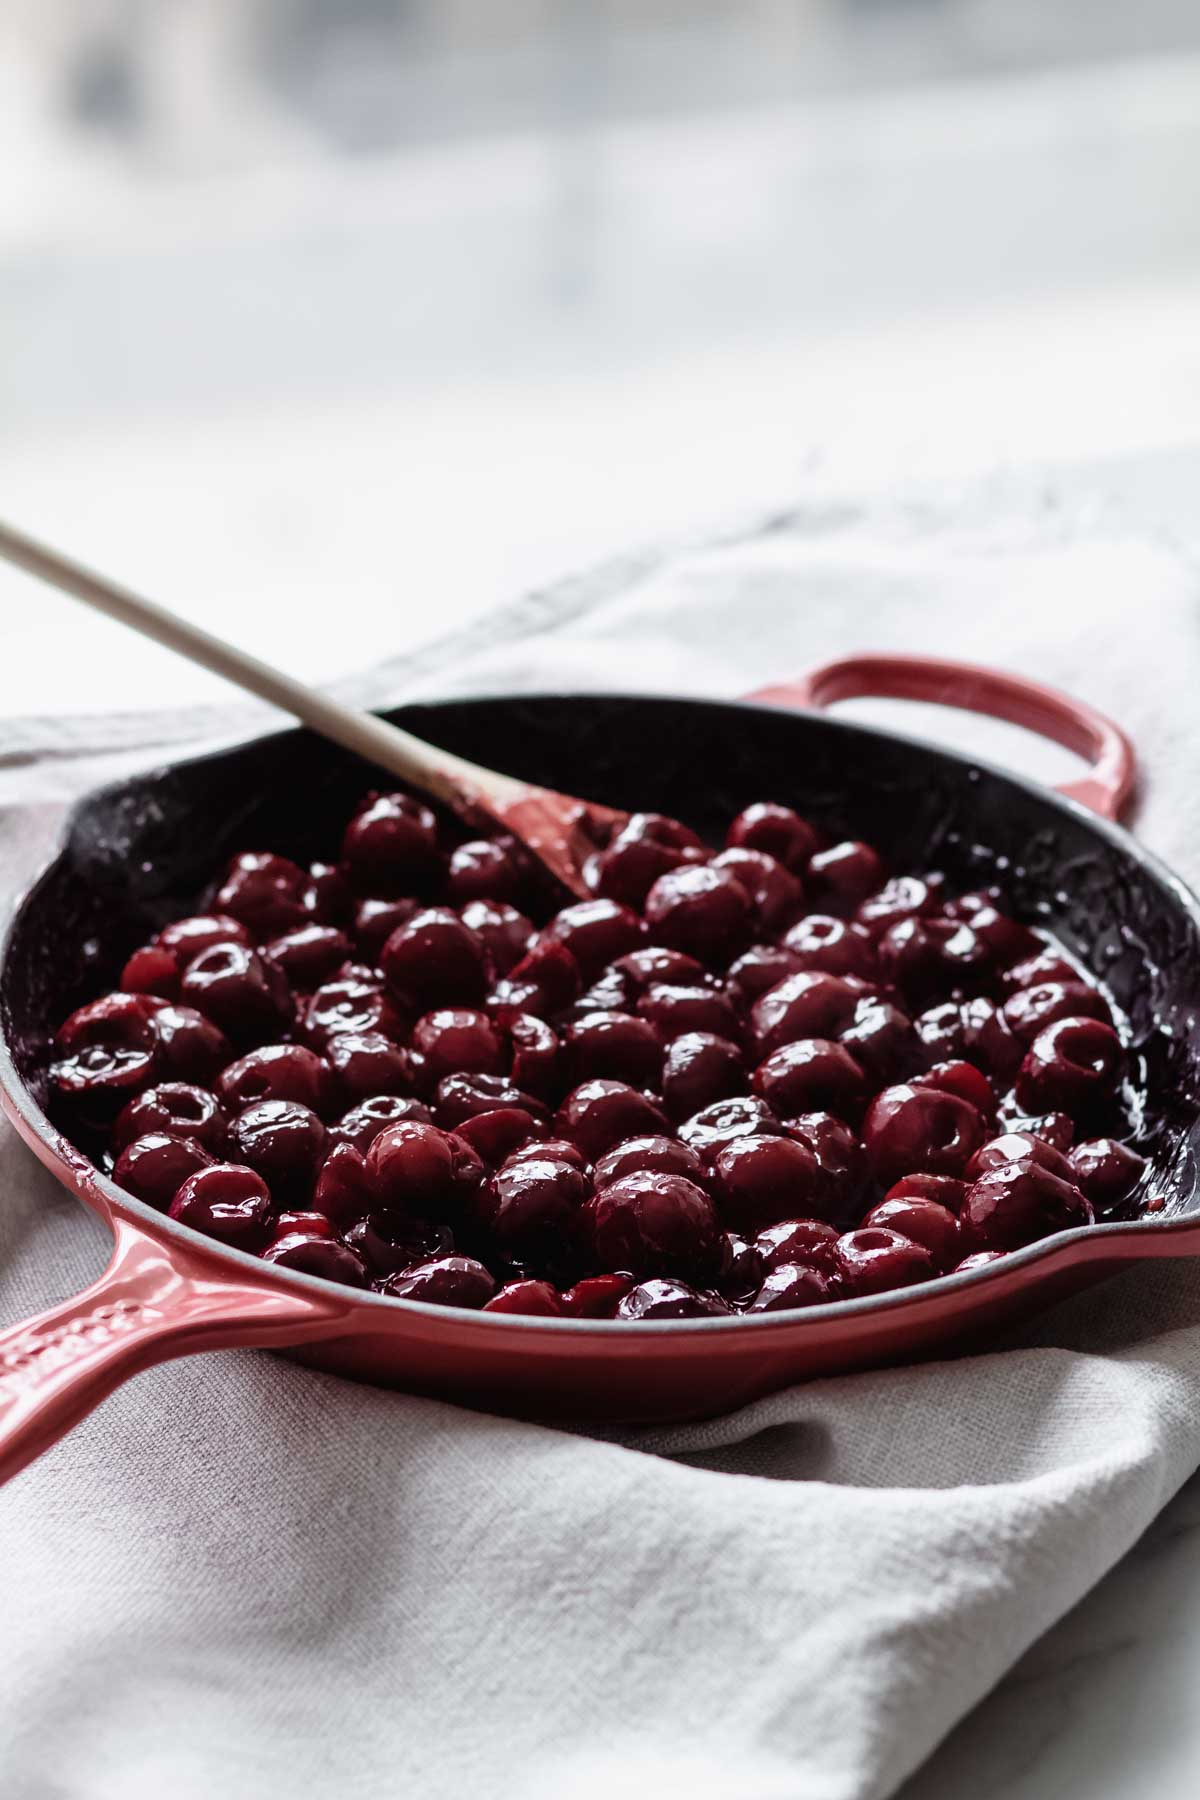 Cooking cherries for cherry cobbler